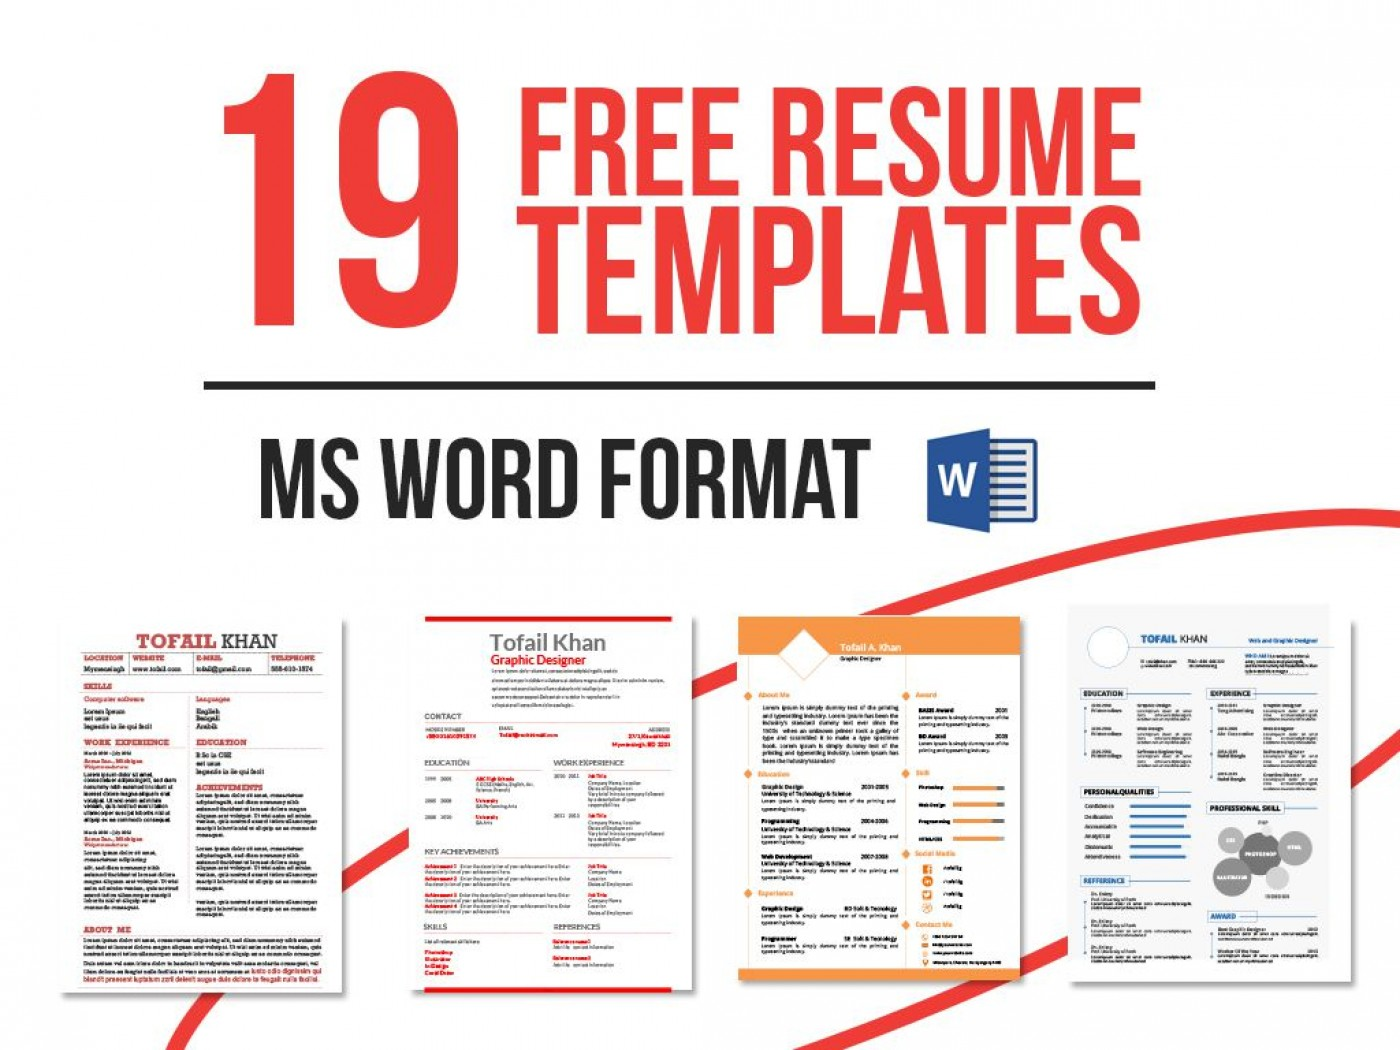 003 Formidable Resume Template M Word Free Highest Clarity  Modern Microsoft Download 2010 Cv With Picture1400